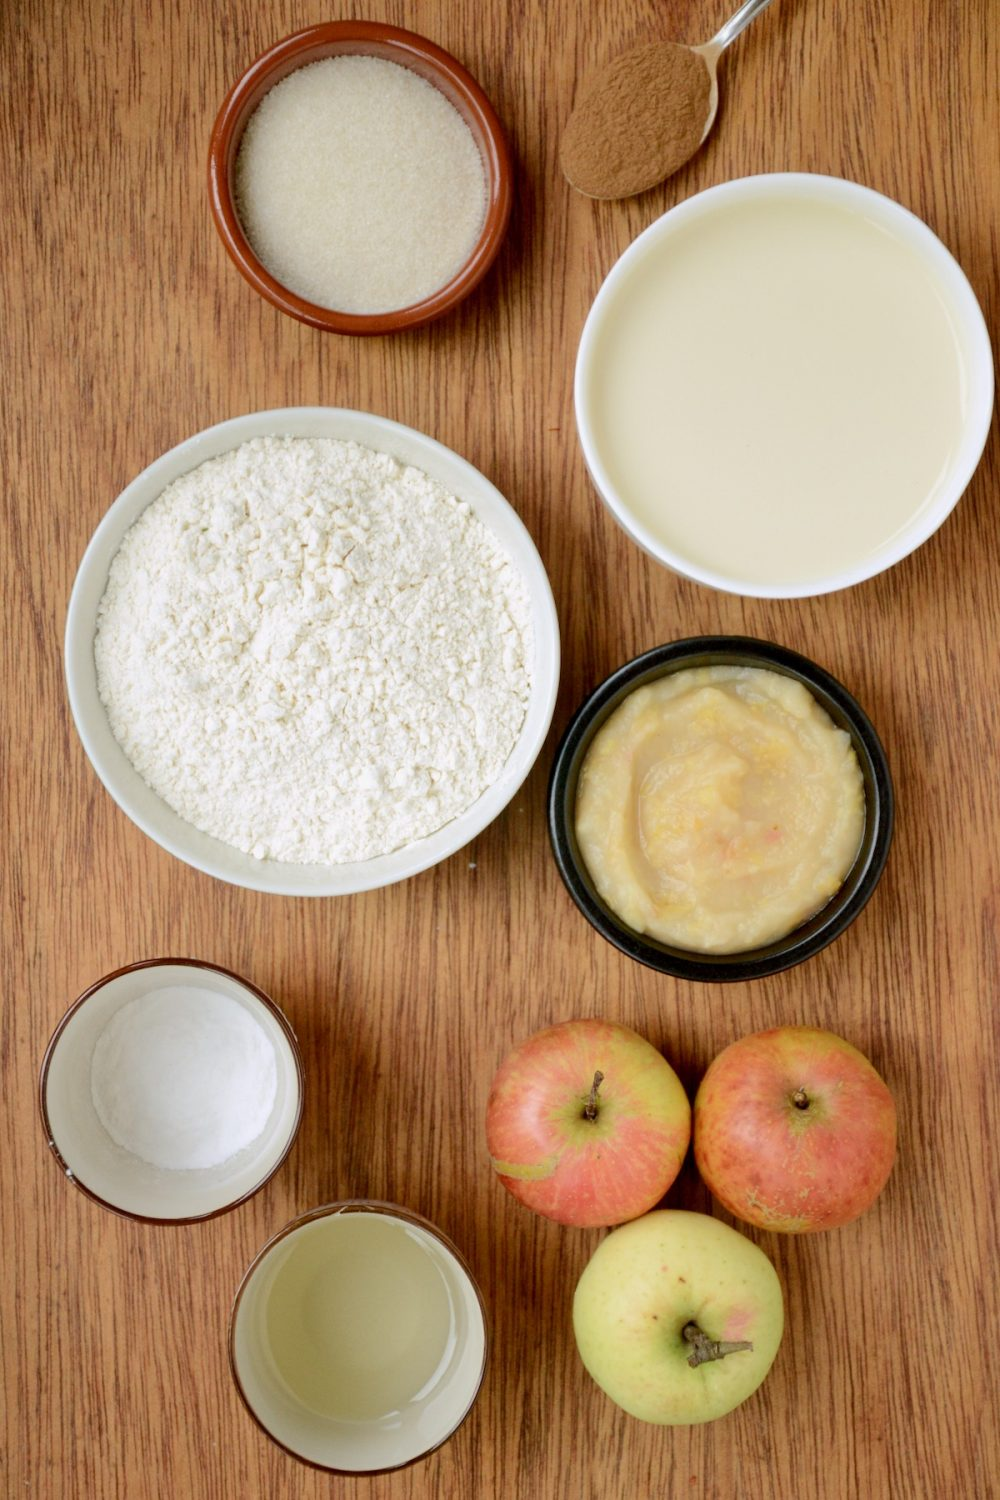 The ingredients laid out on a wooden board - bowls of flour, soy milk, applesauce, oil, baking powder, sugar, some apples and a spoonful of cinnamon.